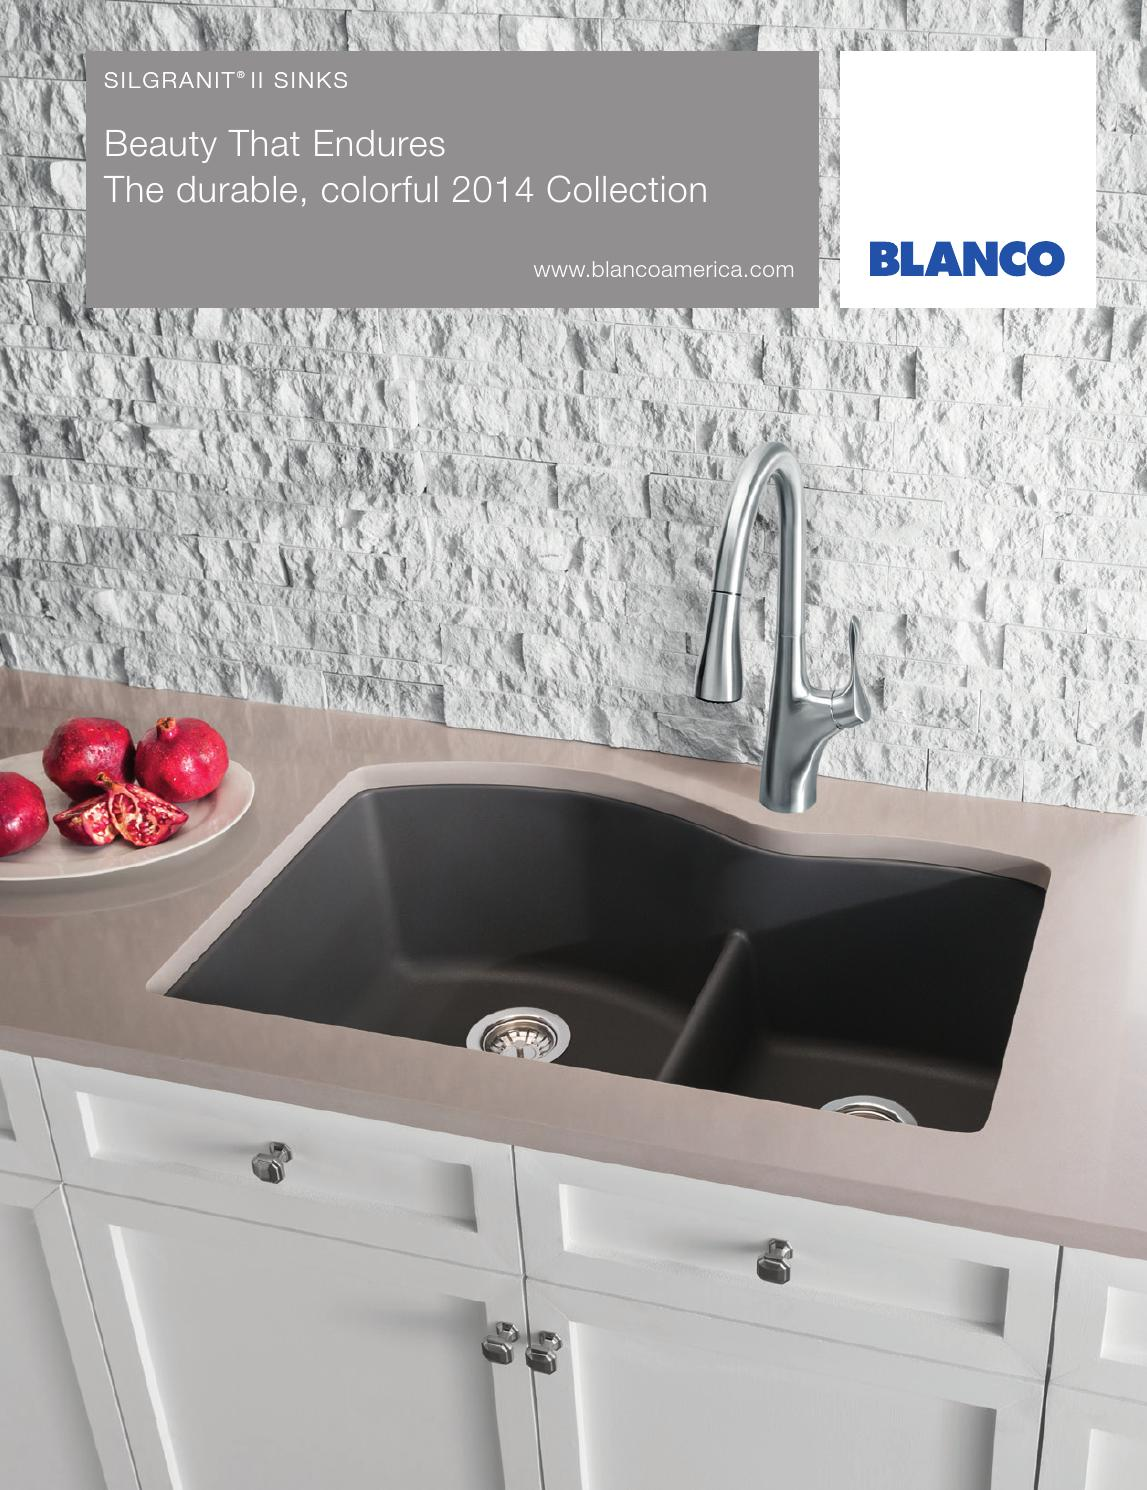 Blanco Farmhouse Sink Reviews Silgranit Kitchen Sink Elegant Home Decor Blanco